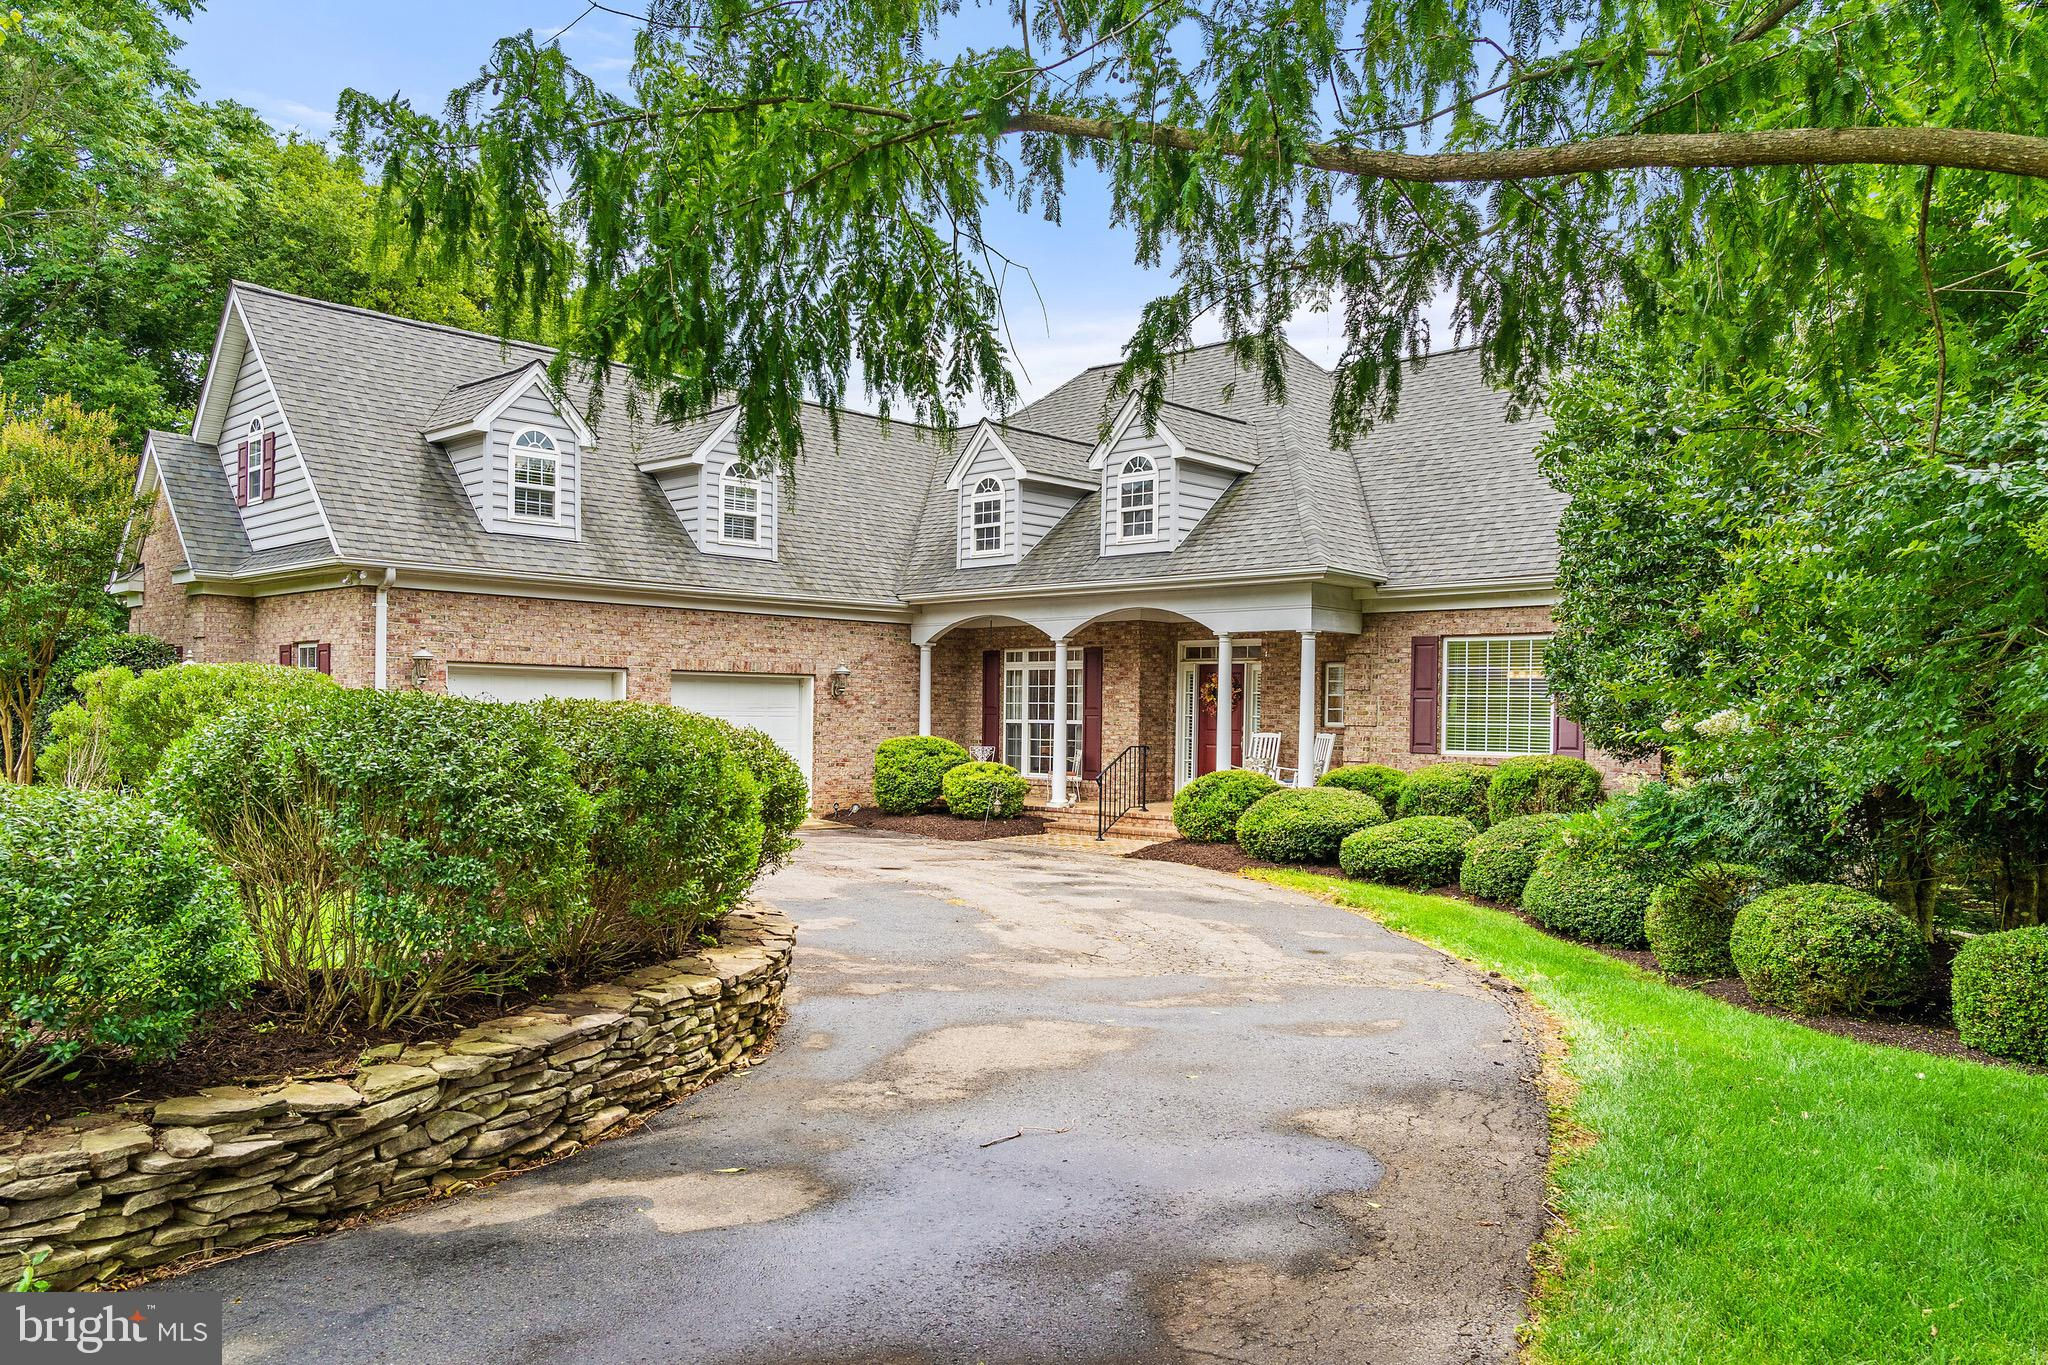 19008 Equestrian Lane, Culpeper, VA 22701 is now new to the market!